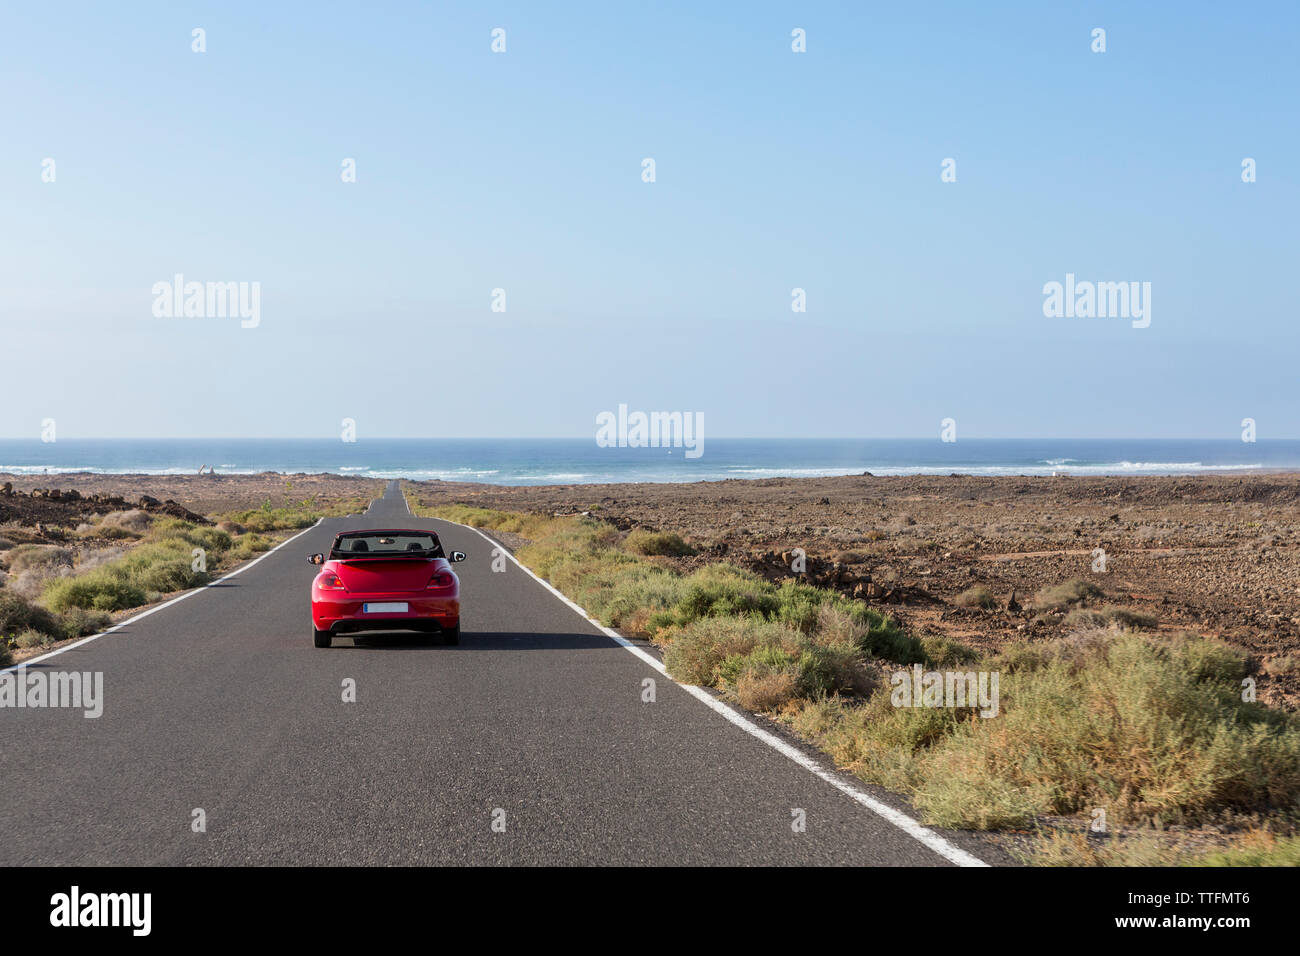 Red cabrio car driving in empty paved road towards the ocean - Stock Image